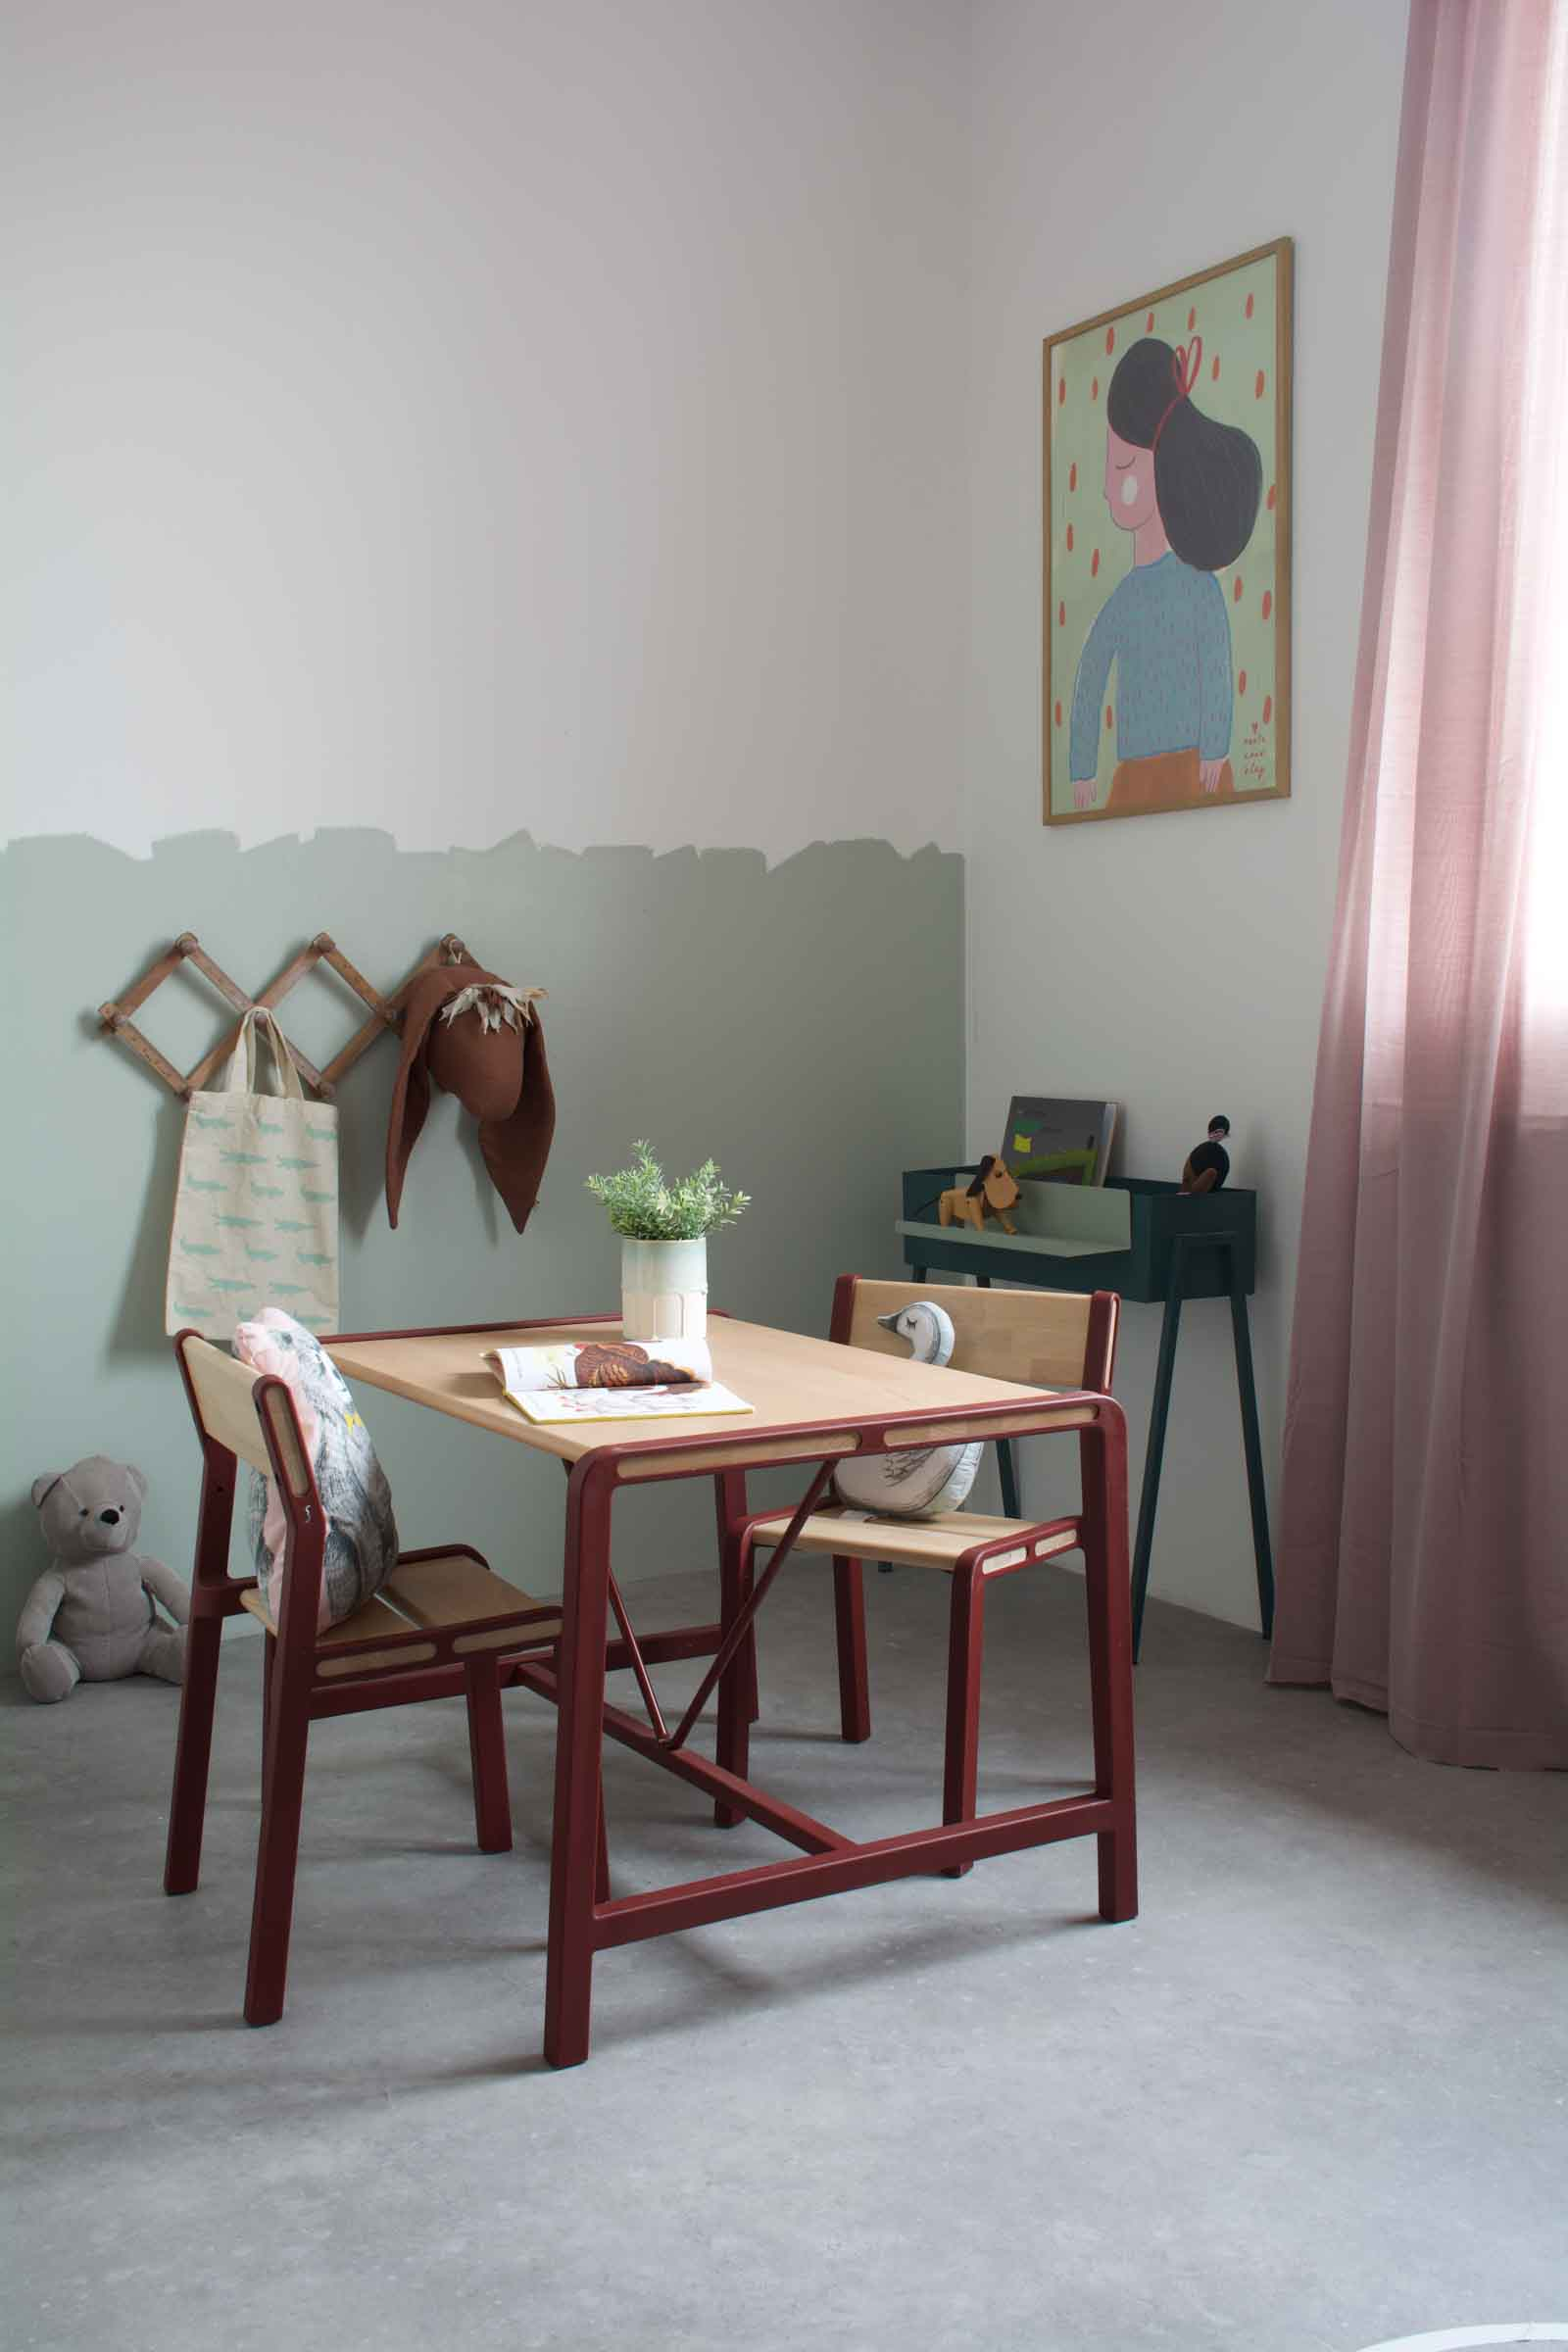 After picture kids room with mint green paneling, a red and wooden table, pink curtains and stuffed